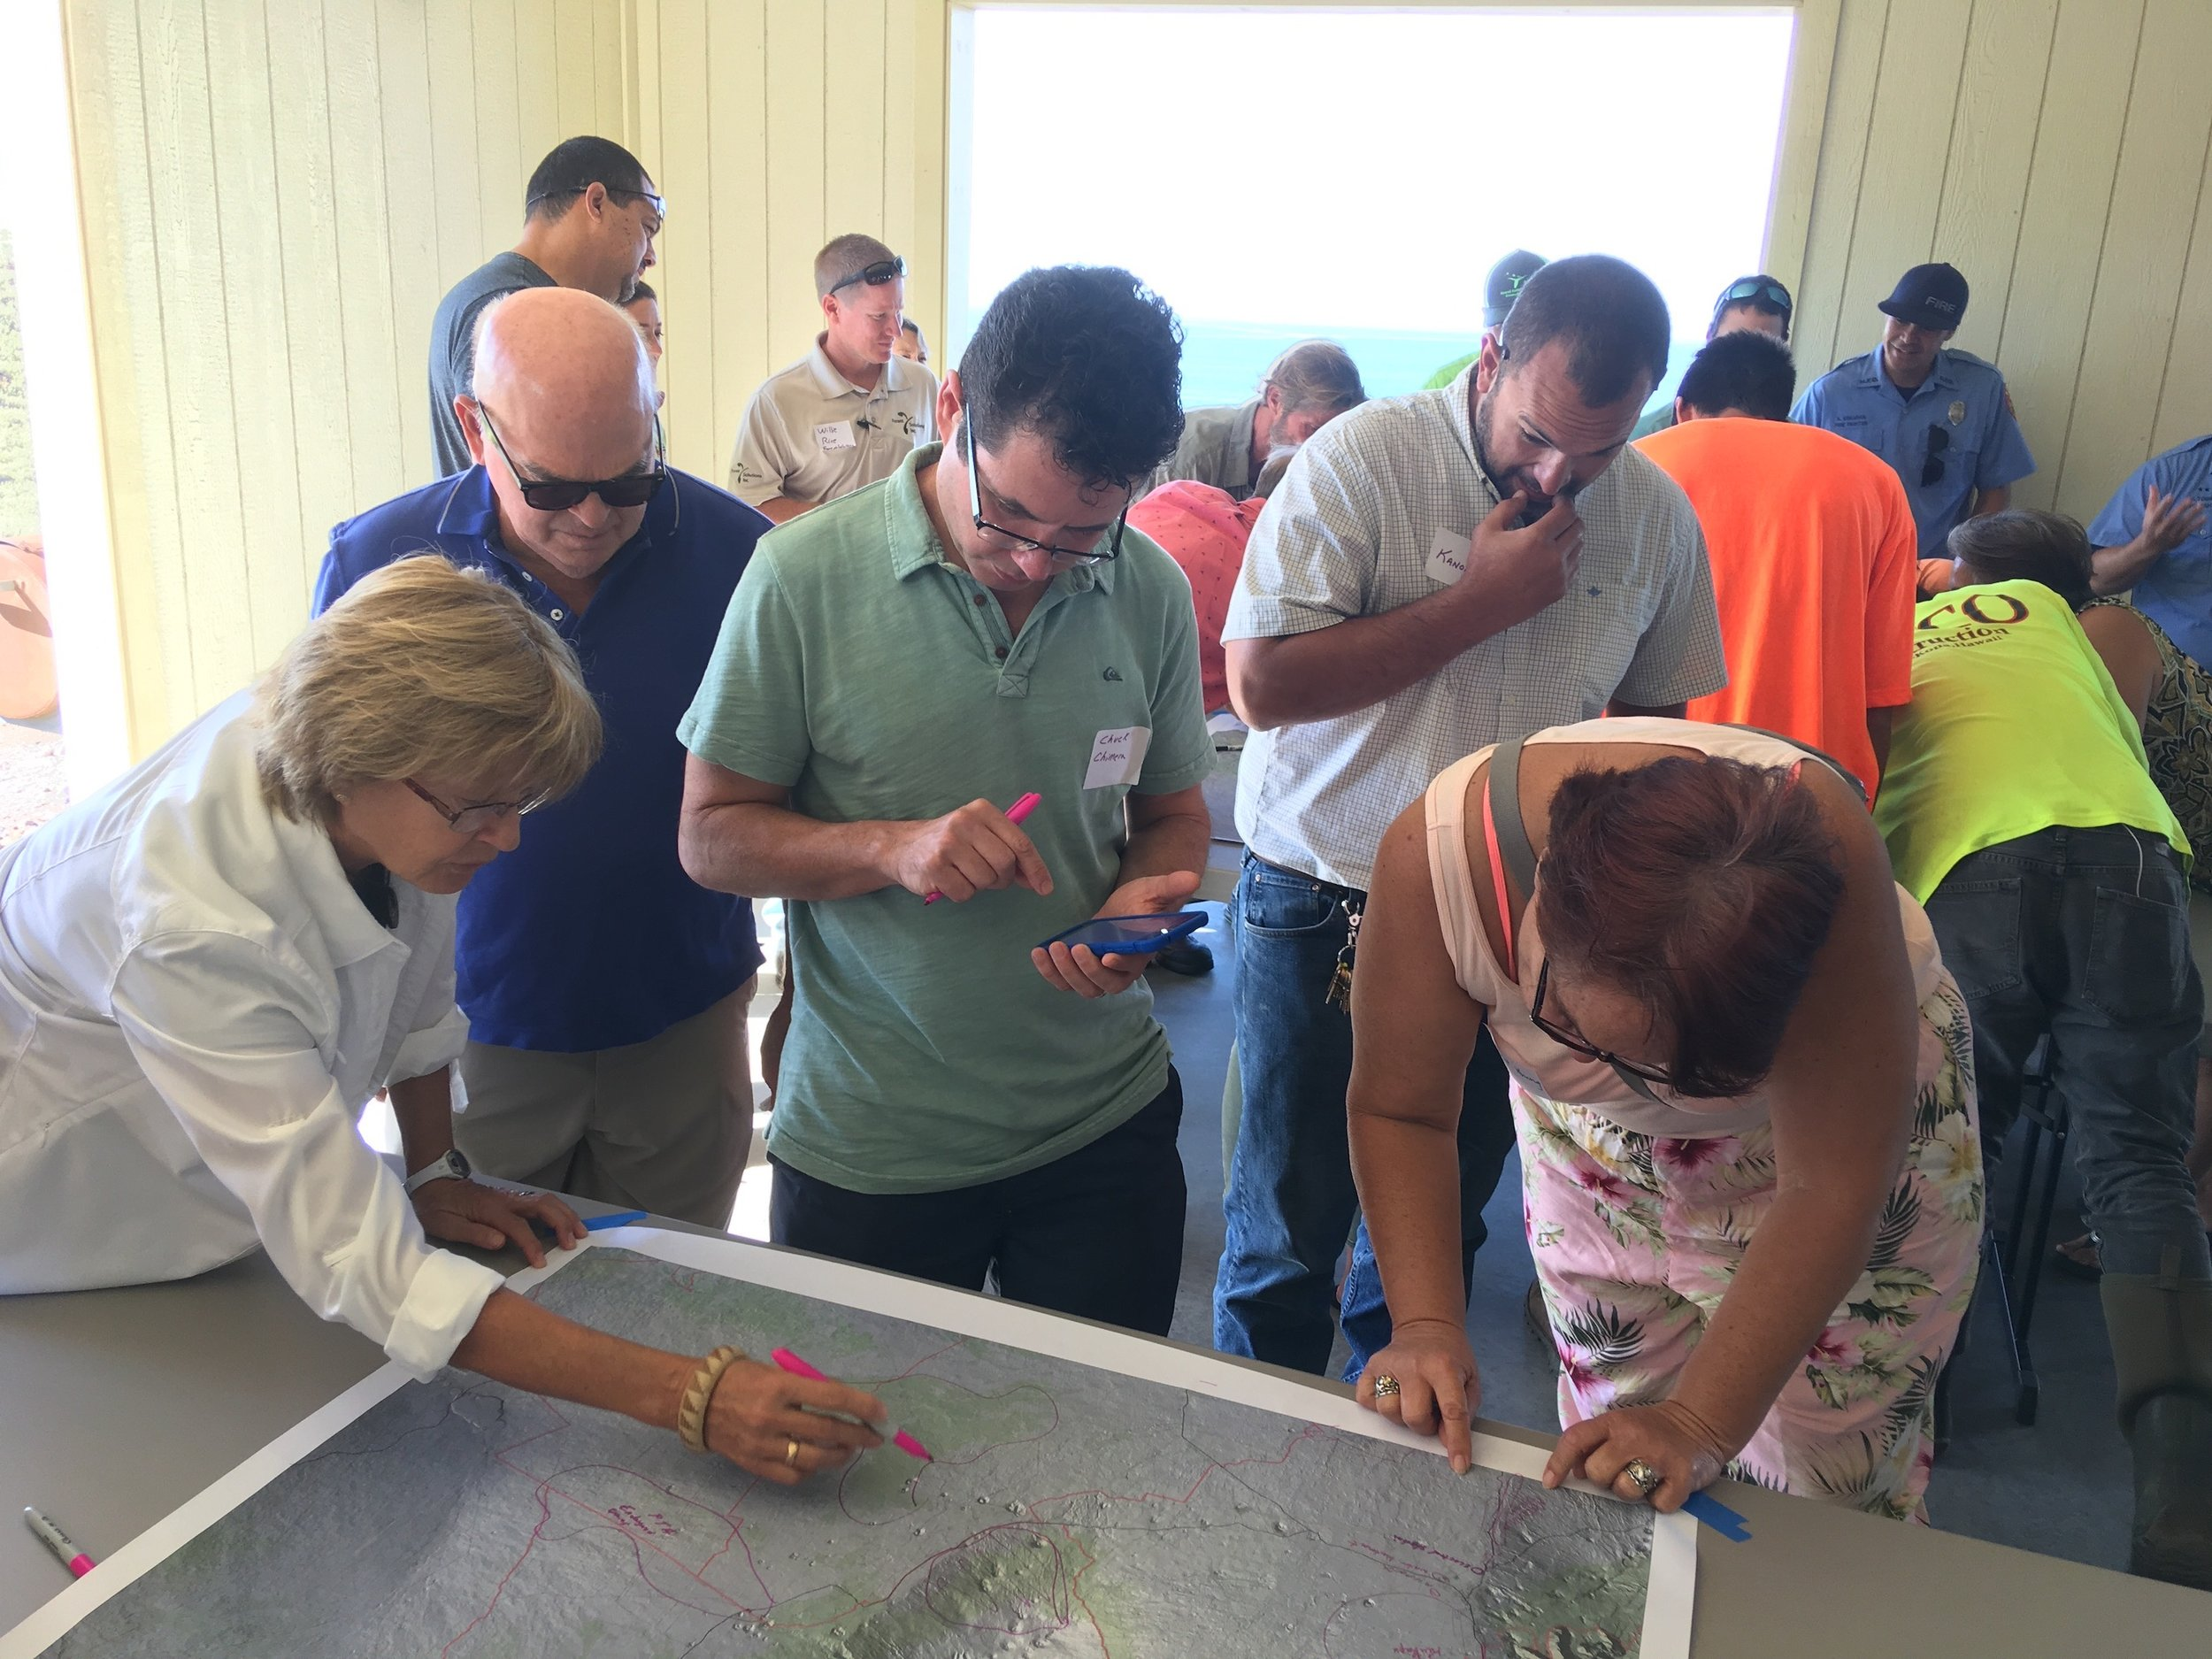 Hawaii Island Kailapa Vegetative Fuels Management Collaborative Action Planning Workshop_2_26_2019_24.jpg